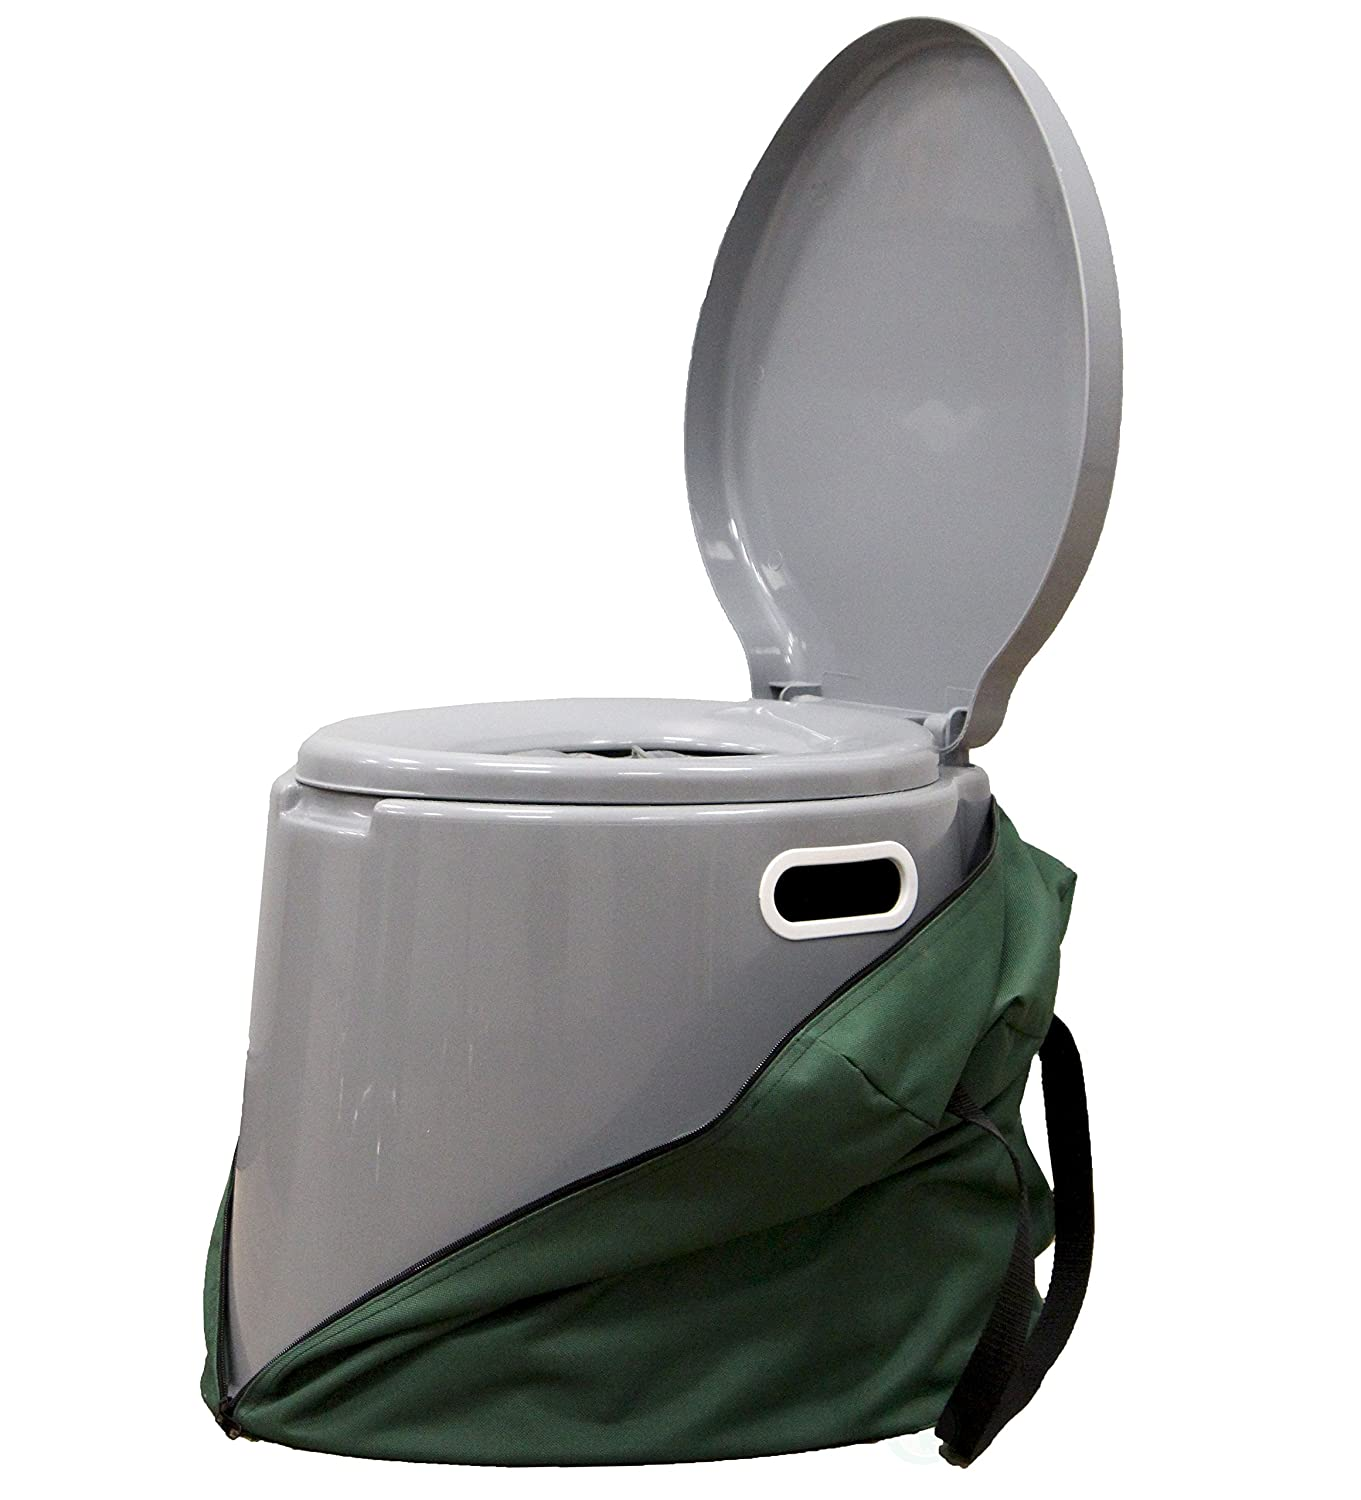 Basicwise Portable Travel Toilet for Camping and Hiking Quickway Imports QI003241.K